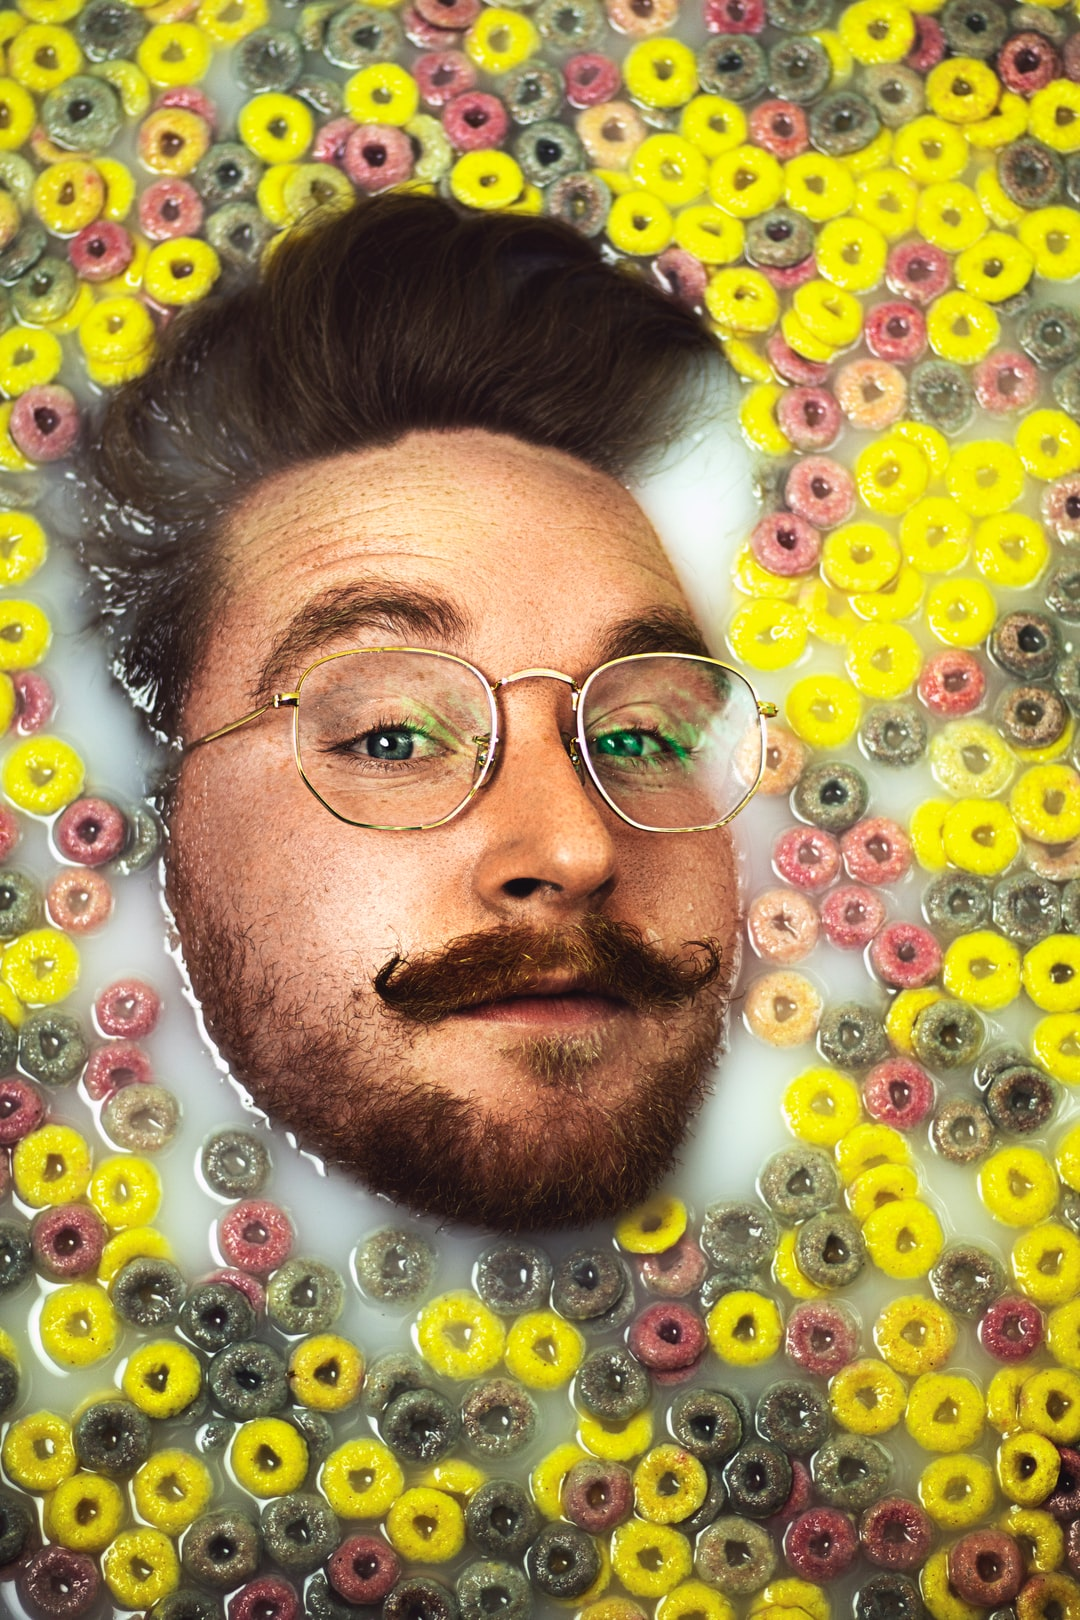 Man with vintage wireframe glasses in fruit loop cereal bath, with ginger beard, quiff and moustache